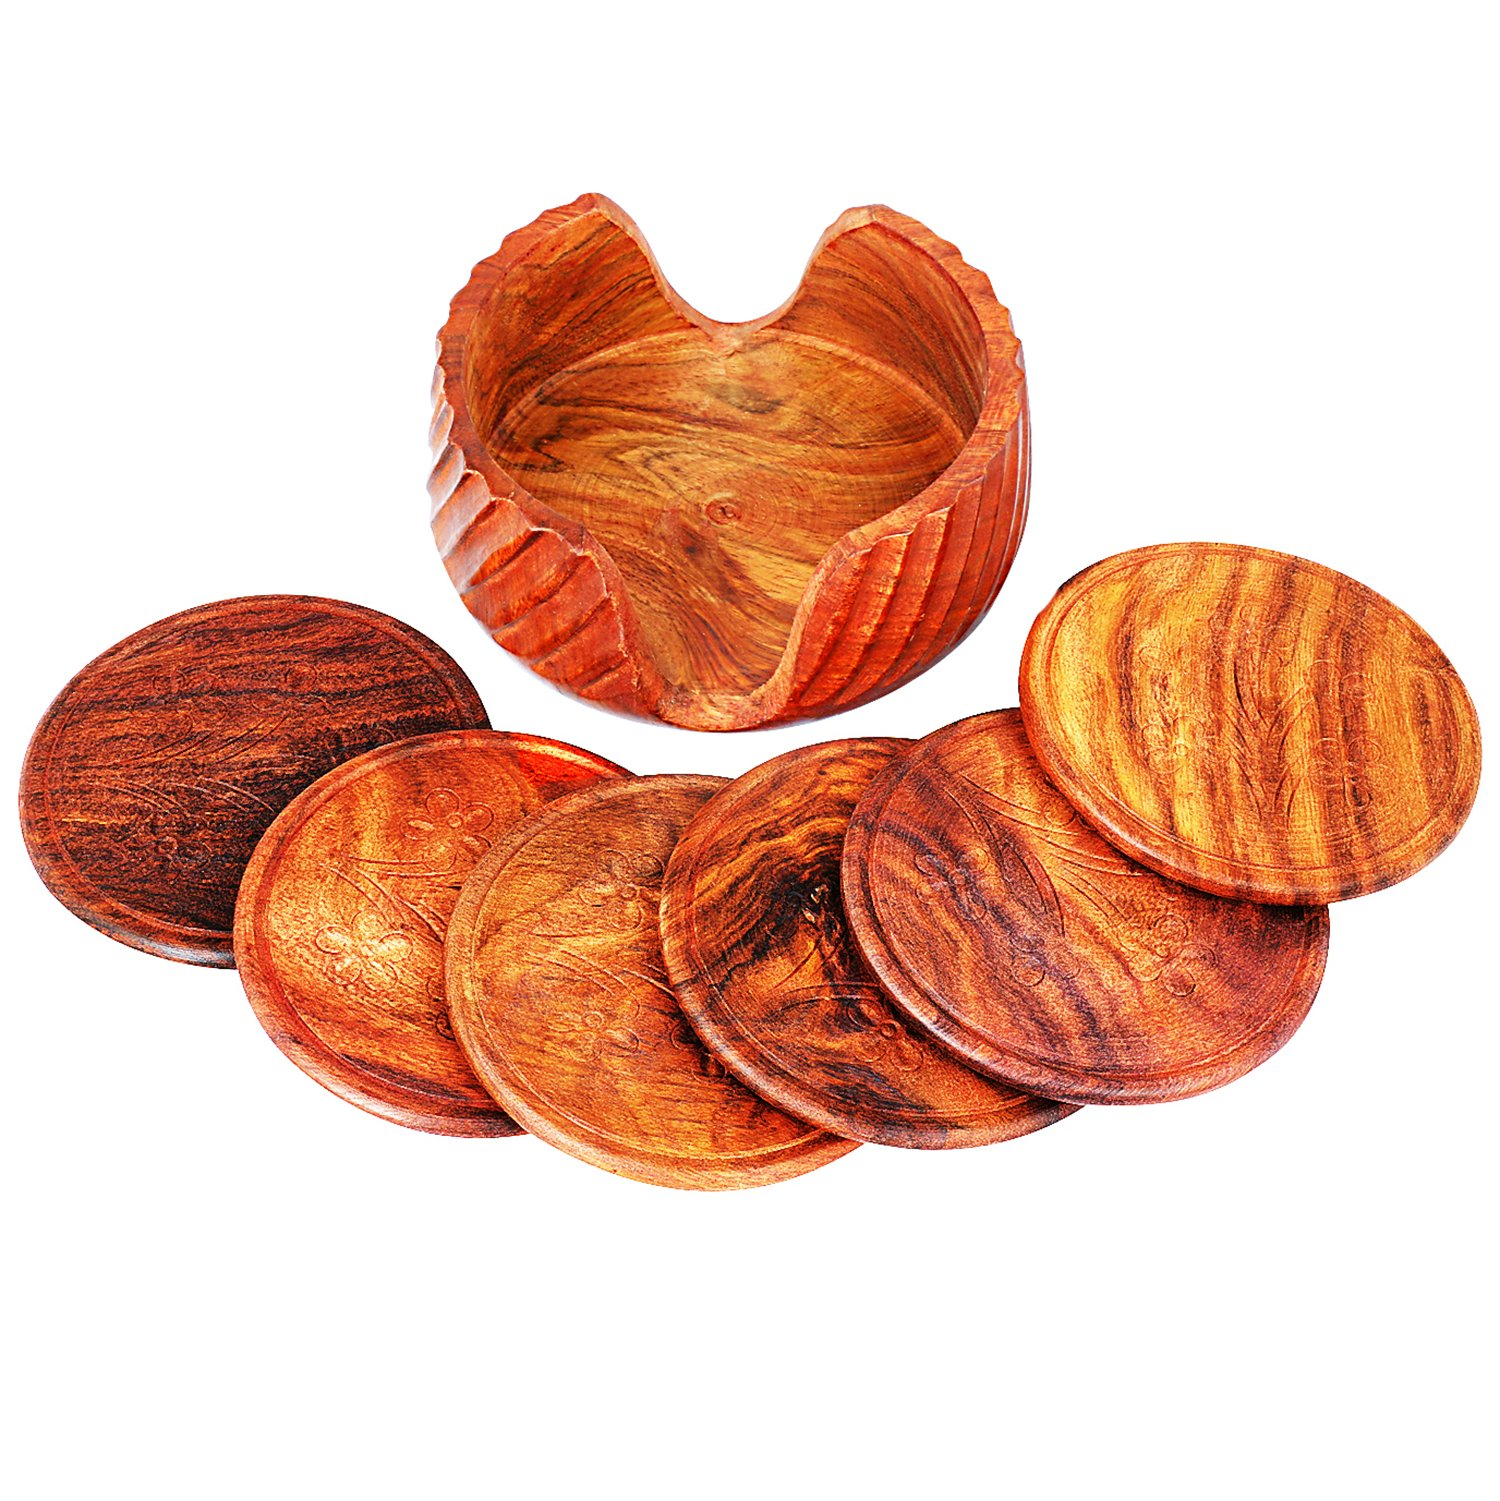 Wooden Drink Coasters Set of 6 With Holder For Drinks Beverages Glasses Tea Cup Coffee Mug Natural Handcrafted Tabletop Protection From Spills & Marks Rustic Style Large Round Non Slip 4 Inches by The Great Indian Bazaar (Image #4)